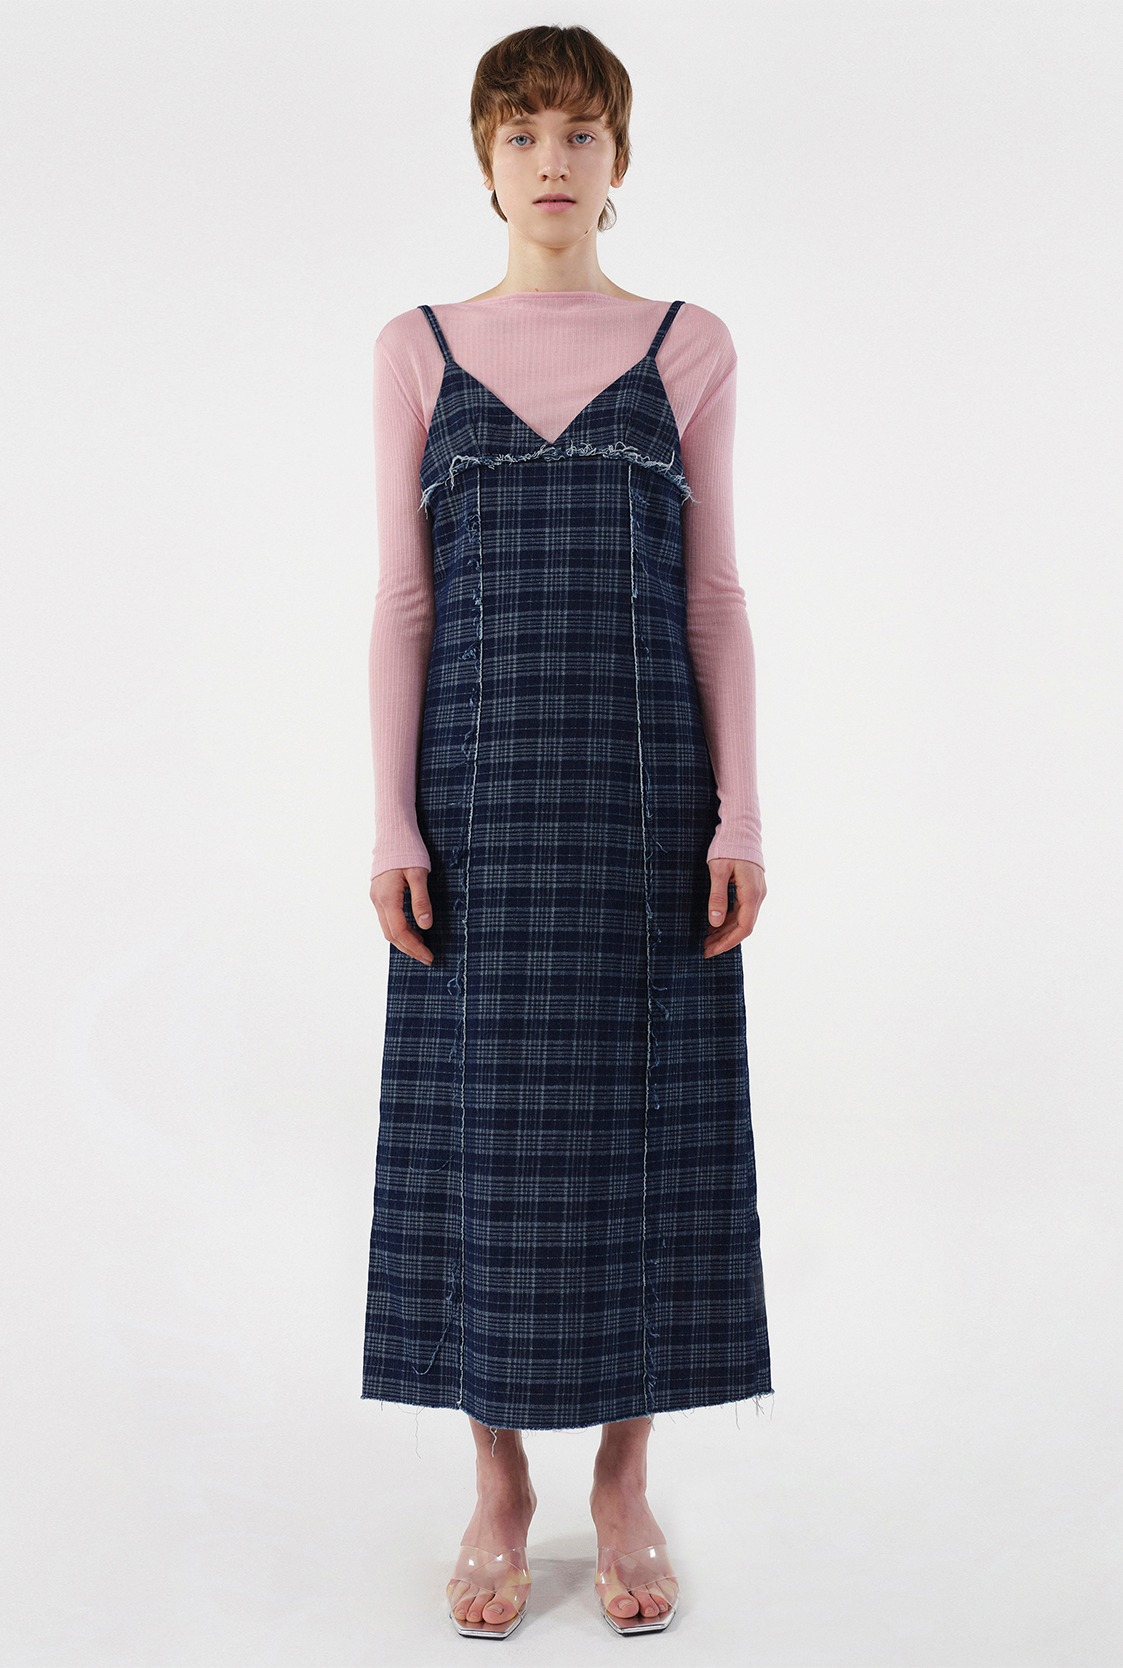 R CHECK CUTTING DRESS